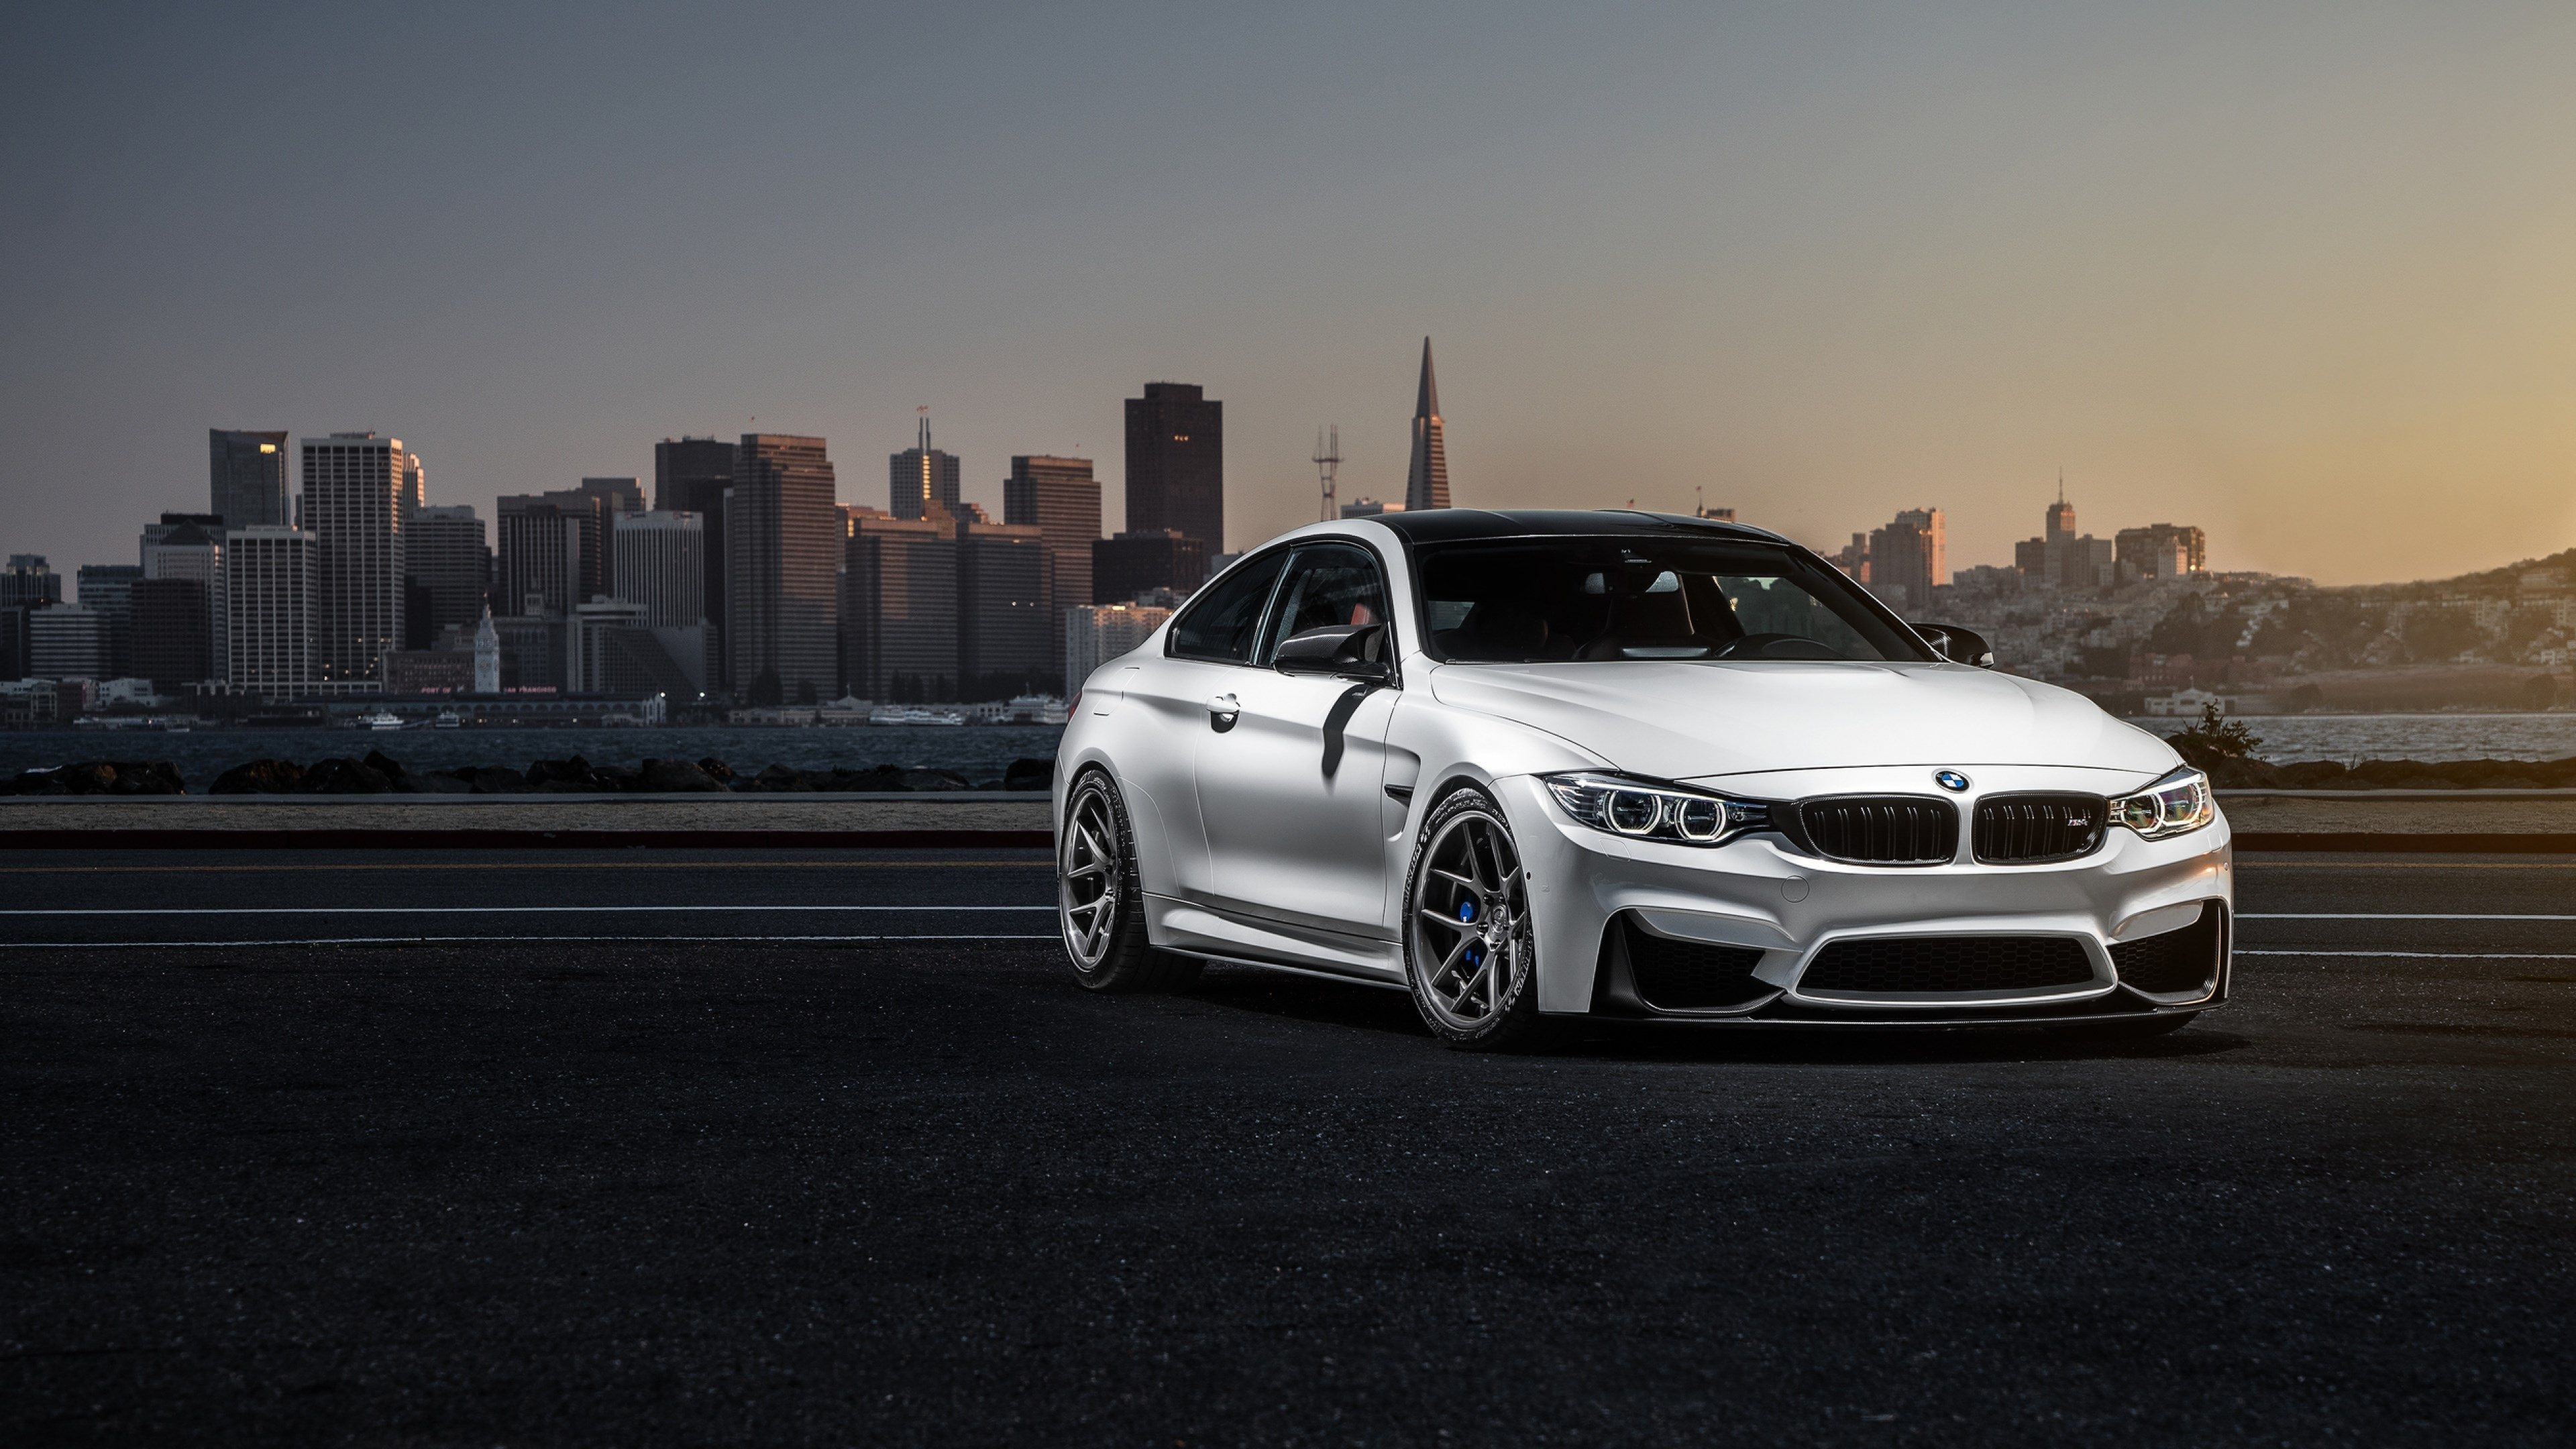 3840x2160 Bmw 4k High Resolution Wallpaper For Desktop Free Download Bmw Wallpapers Bmw M4 Coupe Bmw M4